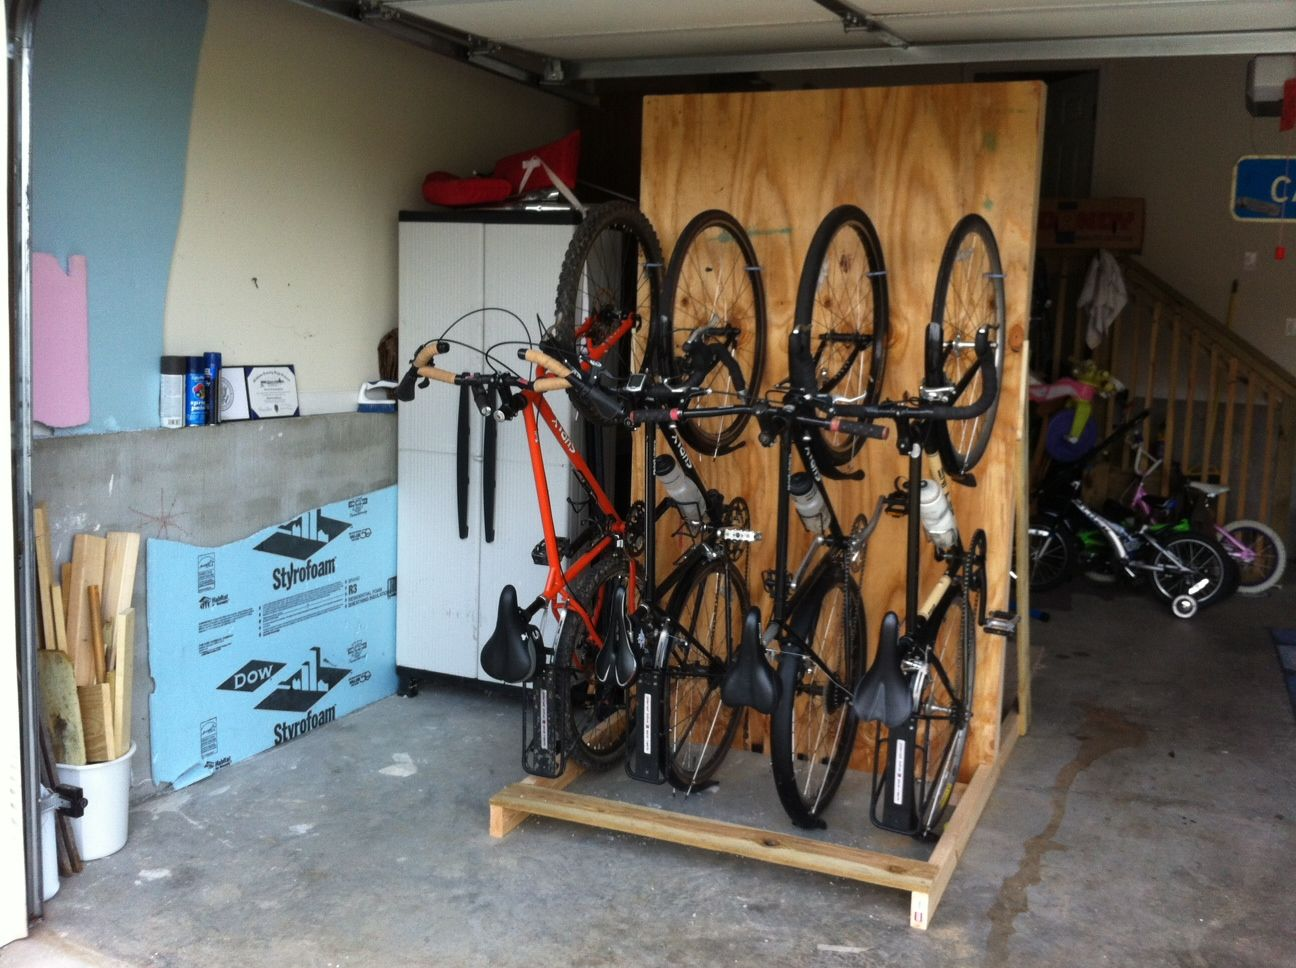 house design country vertical bike storage ideas with teak wood house design country vertical bike storage ideas with teak wood bike hangers also concrete tile